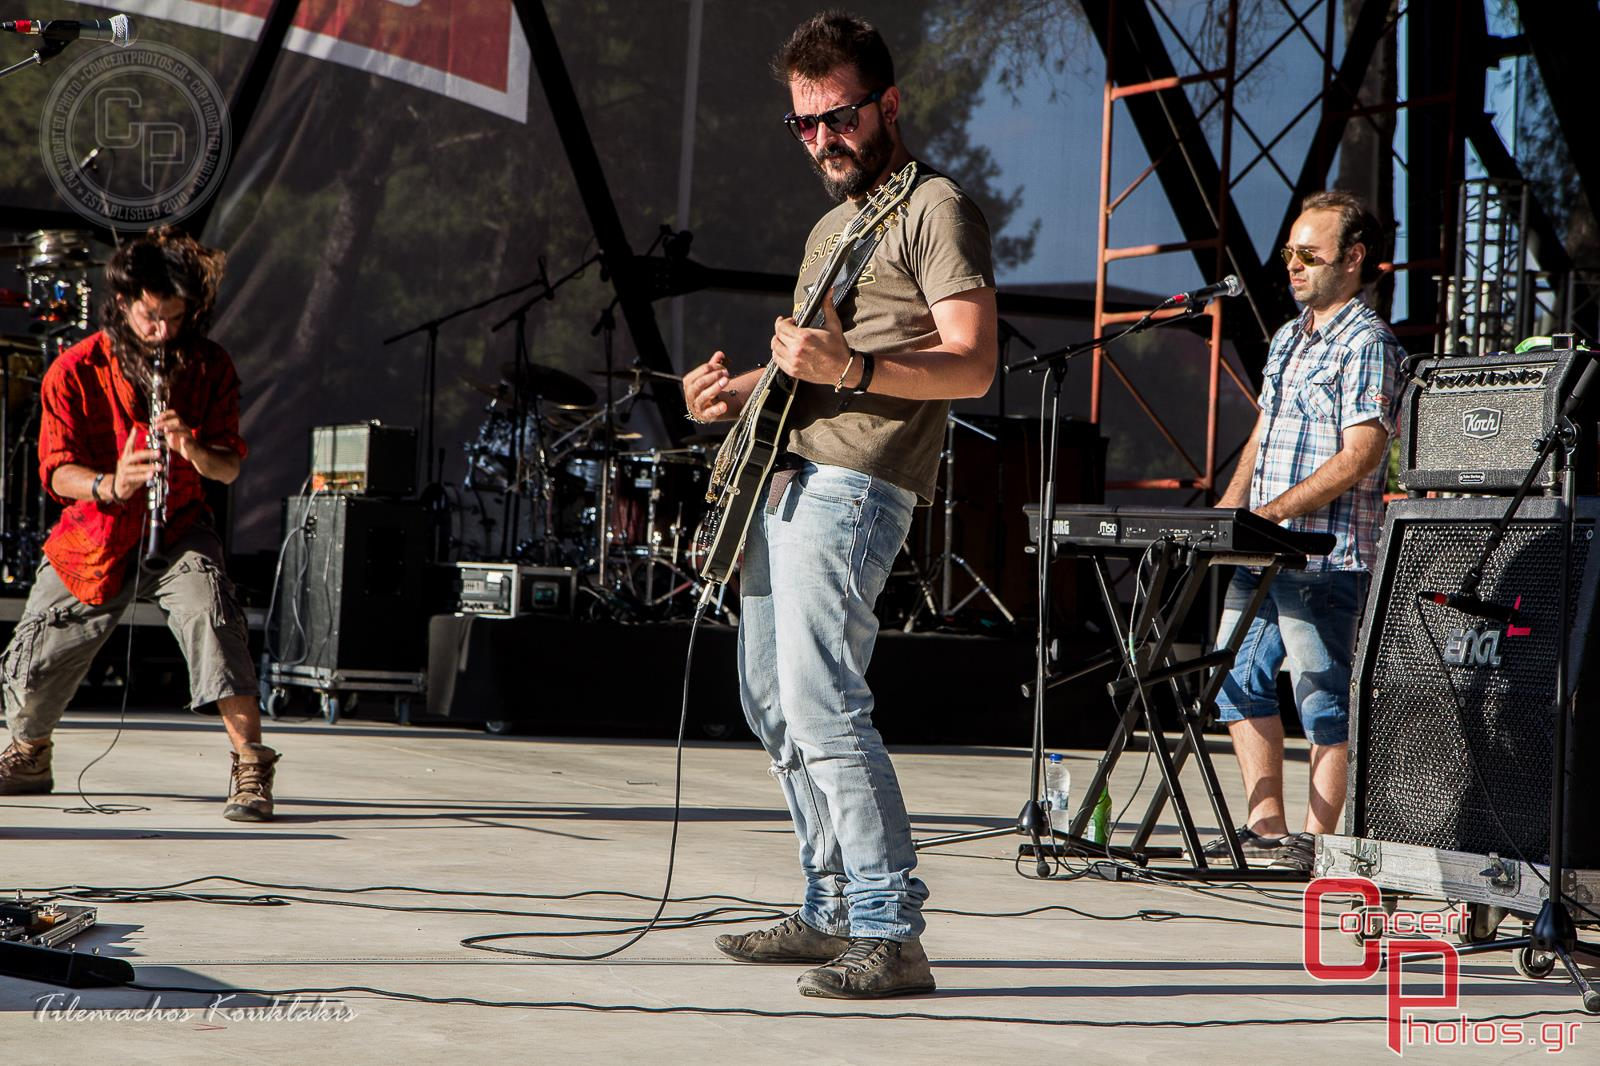 Rockwave 2014-Rockwave 2014 - Day 1 photographer:  - Rockwave-2014-21